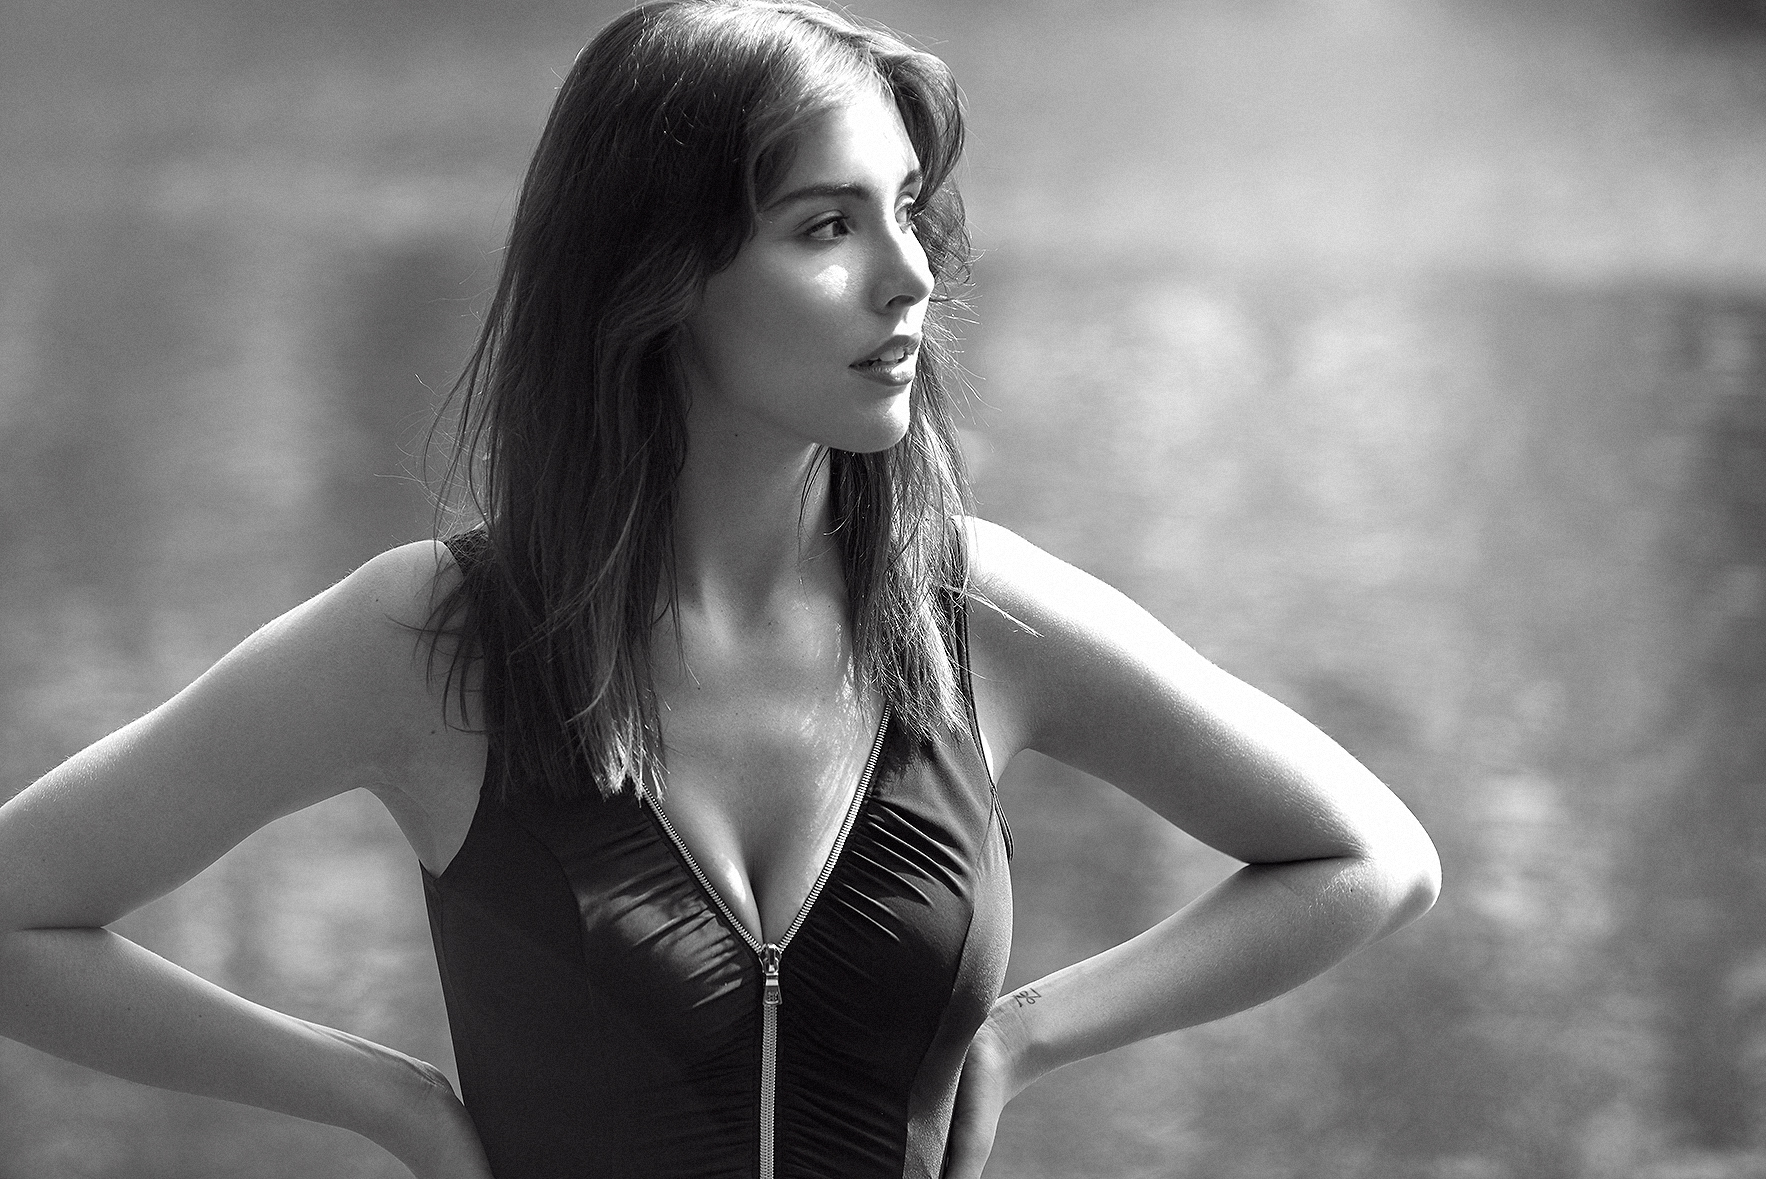 Miracle-suit-black-swimwear-hamstead-heath-pool-swimsuit-lingerie-la-femme-editorial-photoshoot-bathing-suit-10